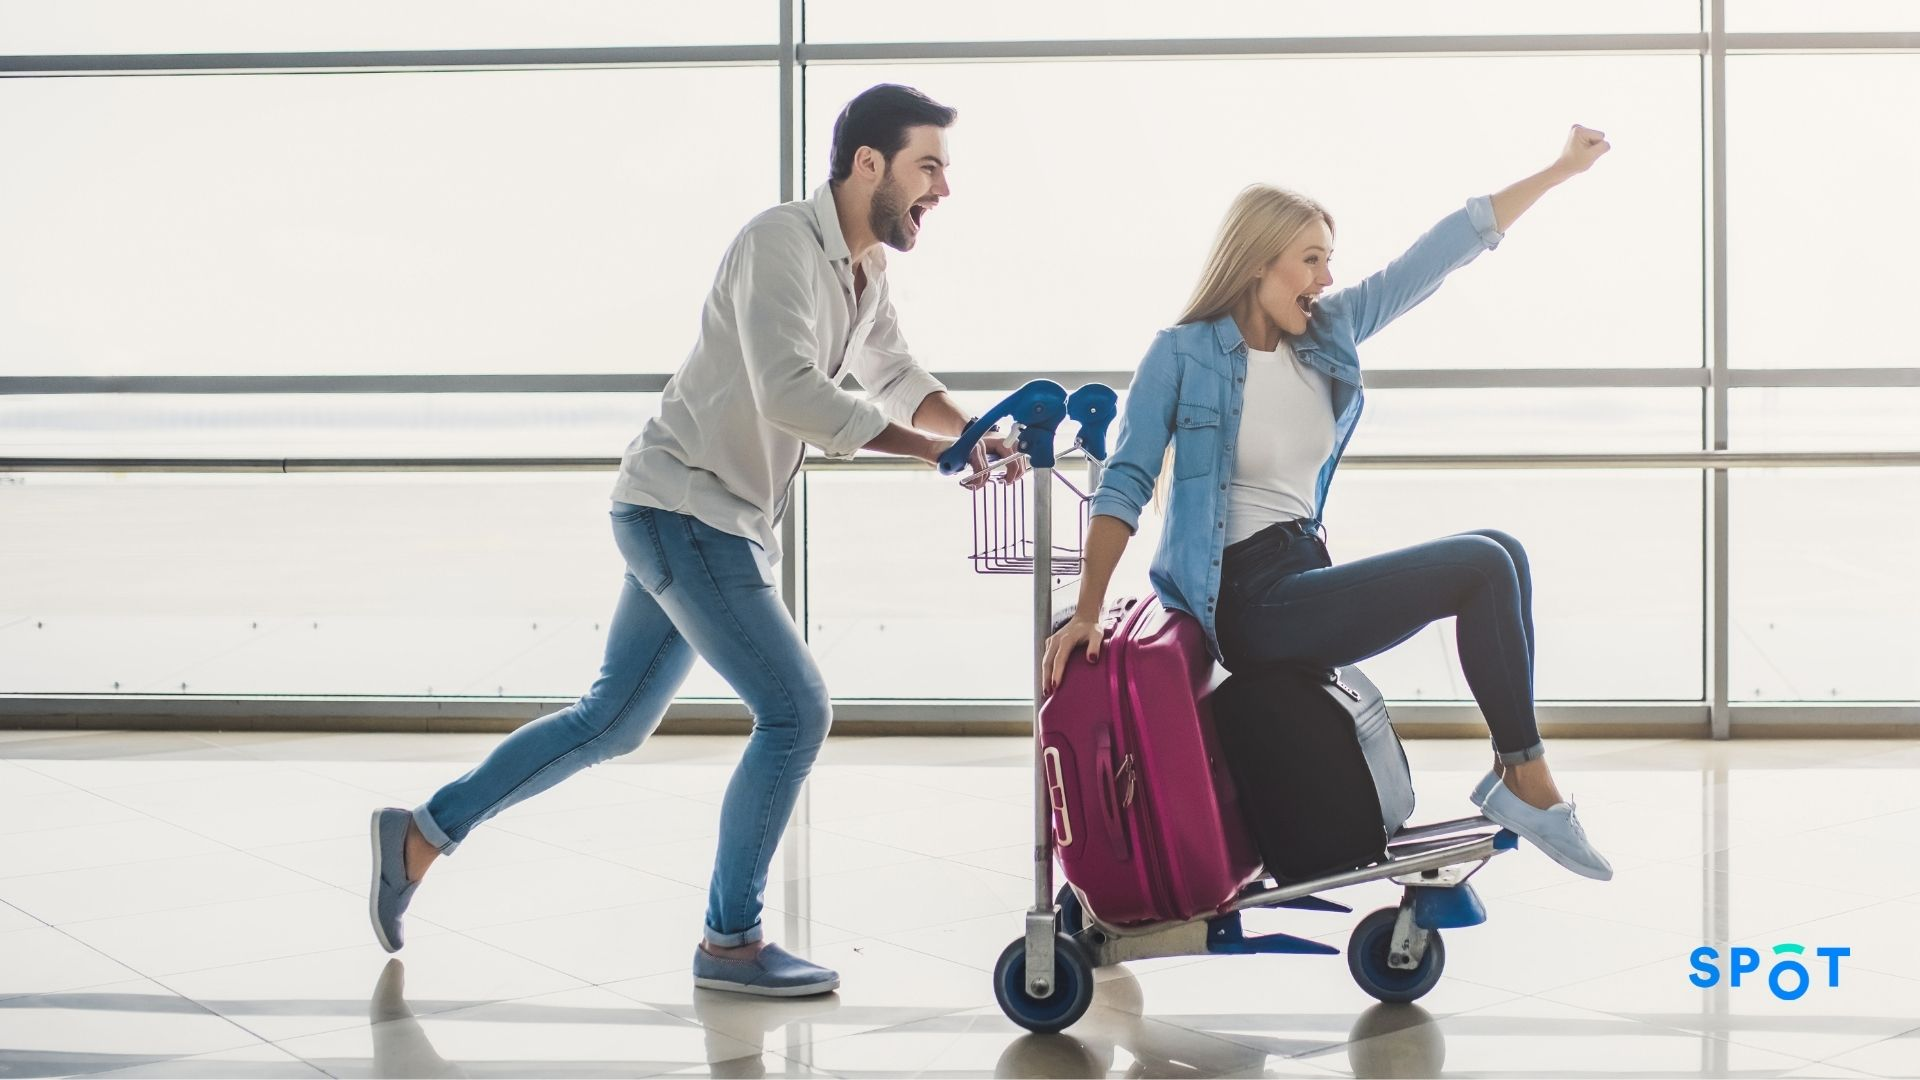 A couple having fun at the airport, how airports can enhance the traveling experience